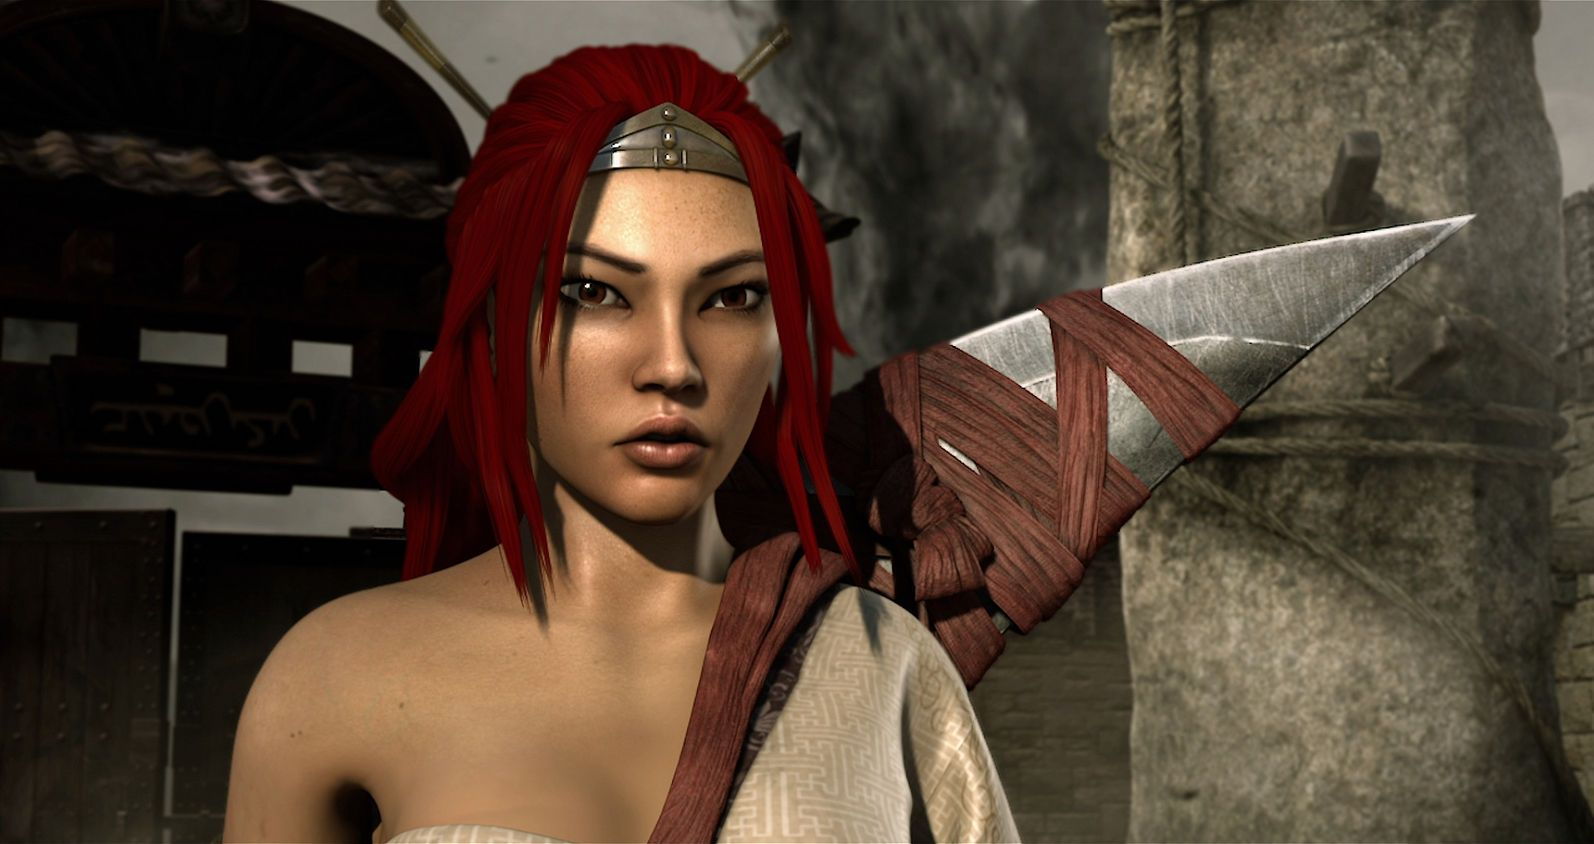 Heavenly Sword Trailer Video Game Cut Scene Turned Animated Feature